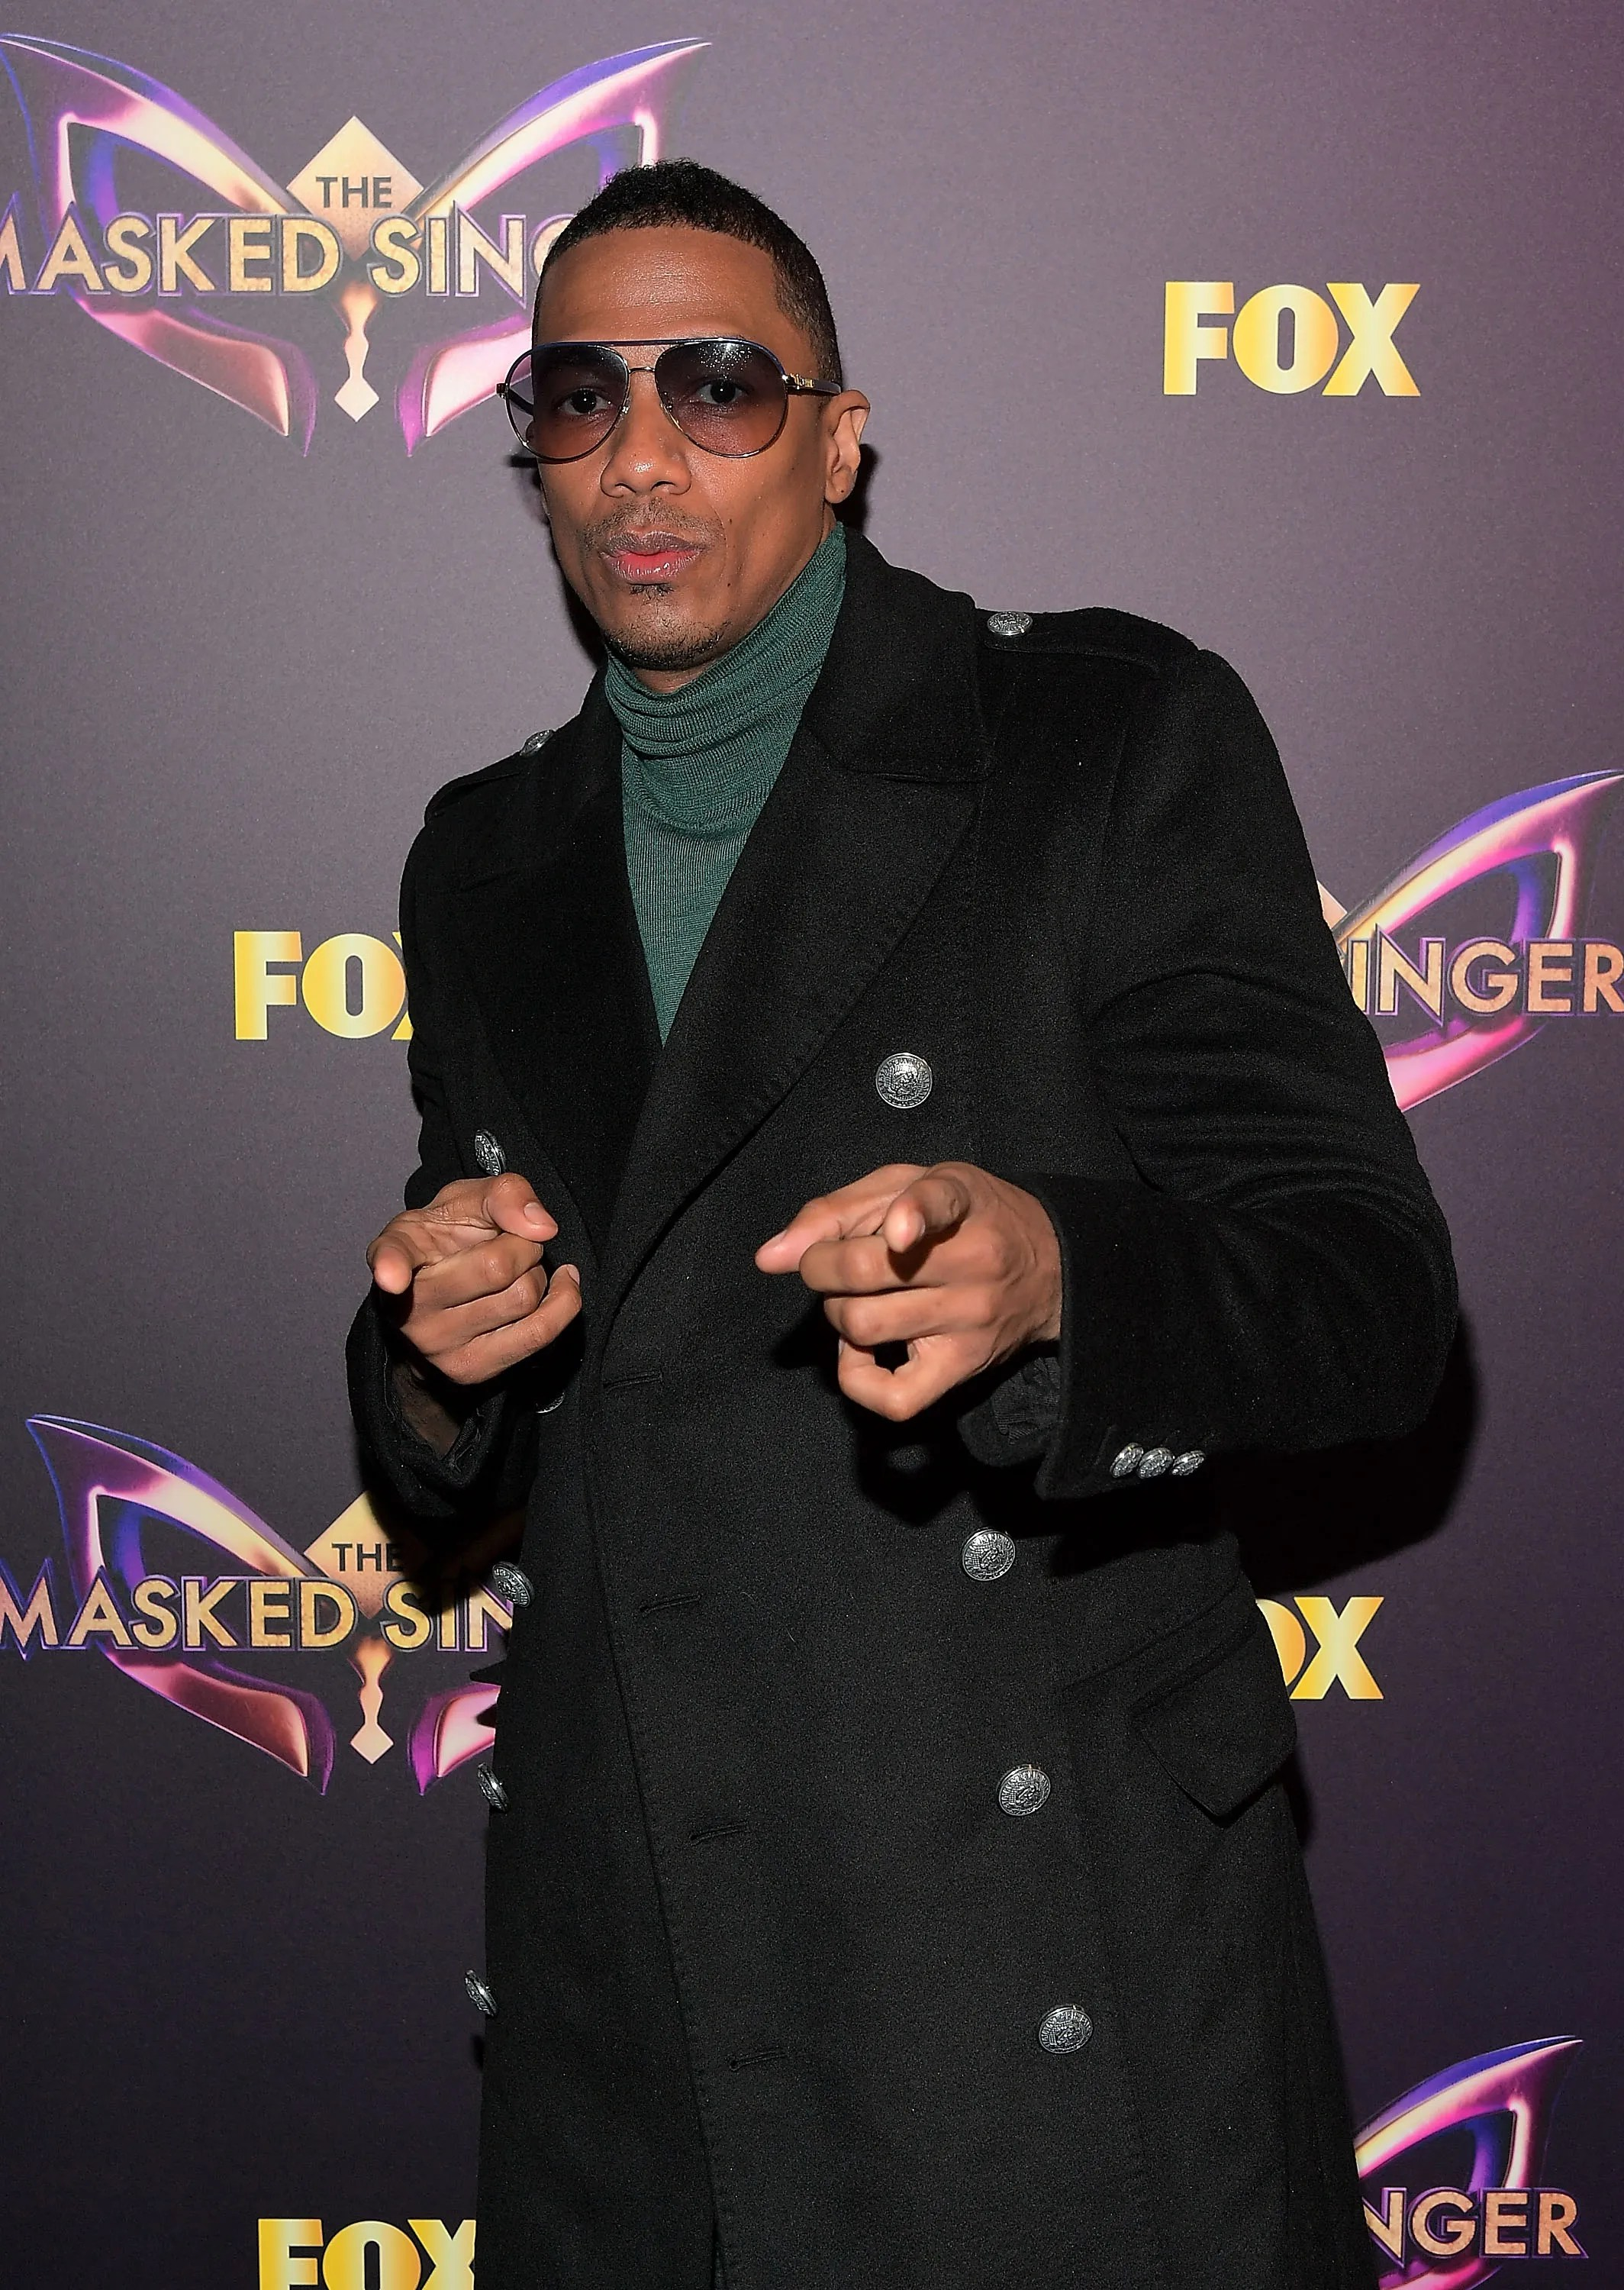 Nick Cannon revealed in 2012 that he has a form of Lupus that affects his kidneys.